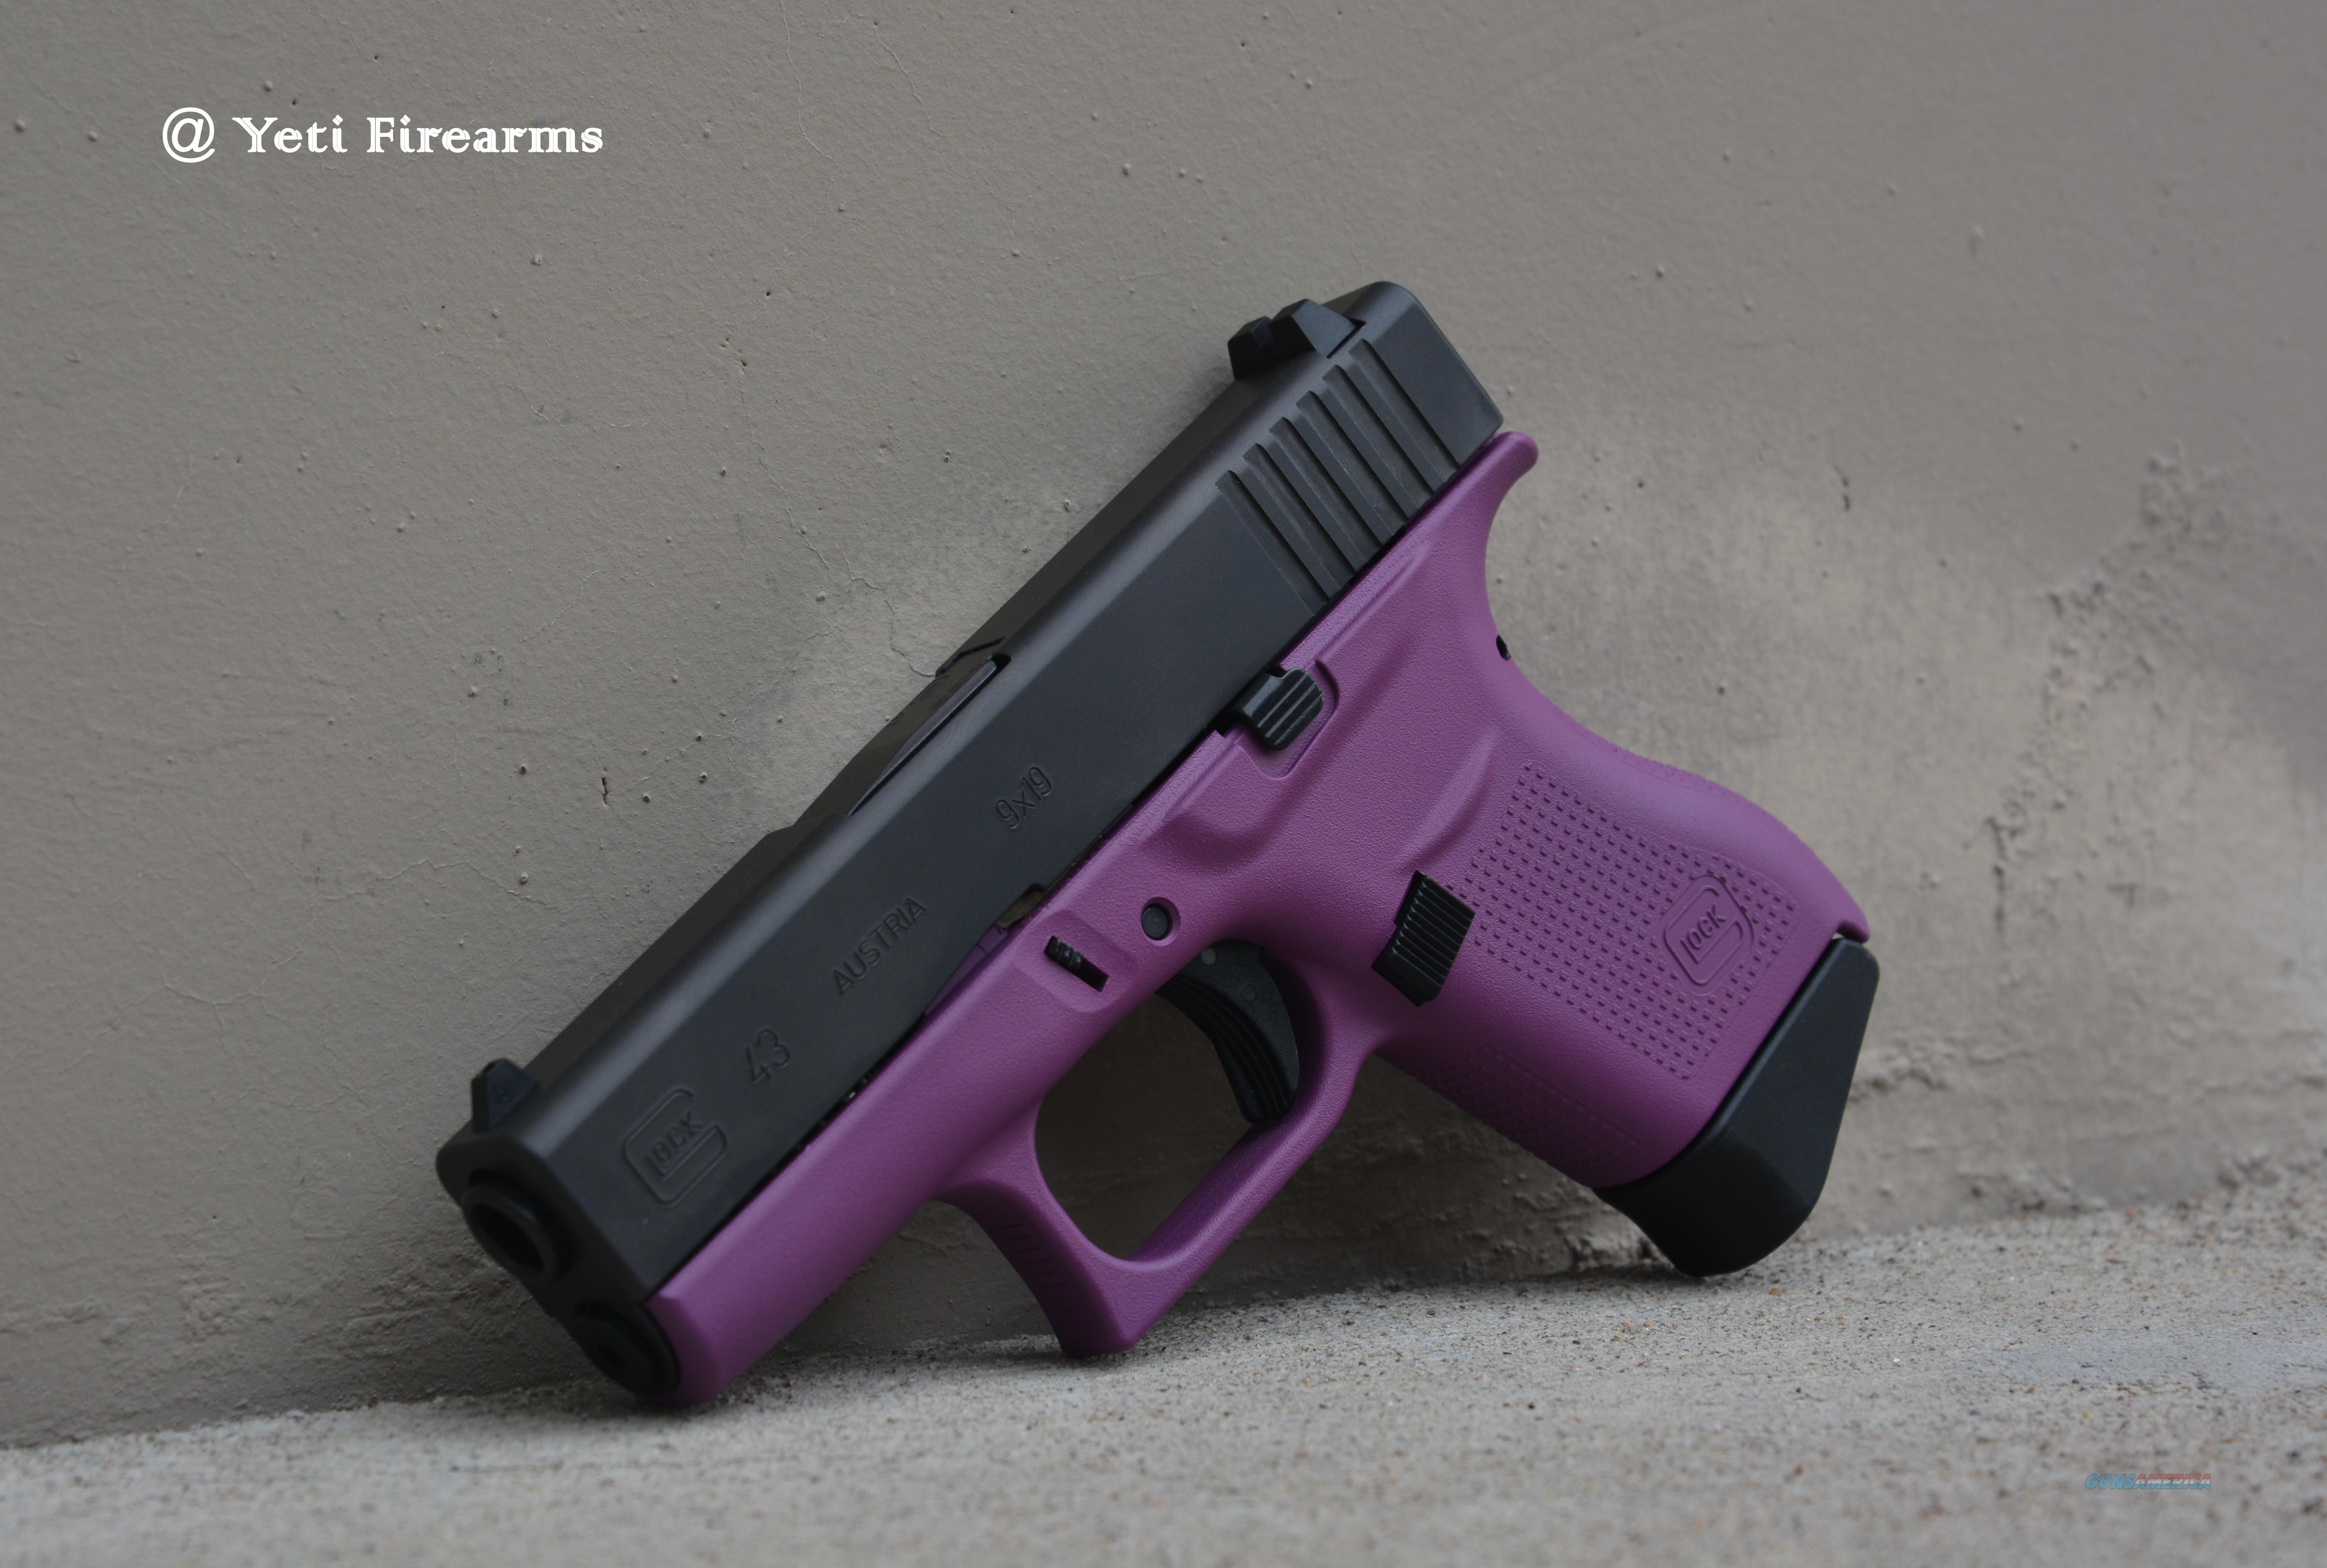 X-Werks Glock 43 9mm Wild Purple 2 Mags No CC Fee  Guns > Pistols > Glock Pistols > 43